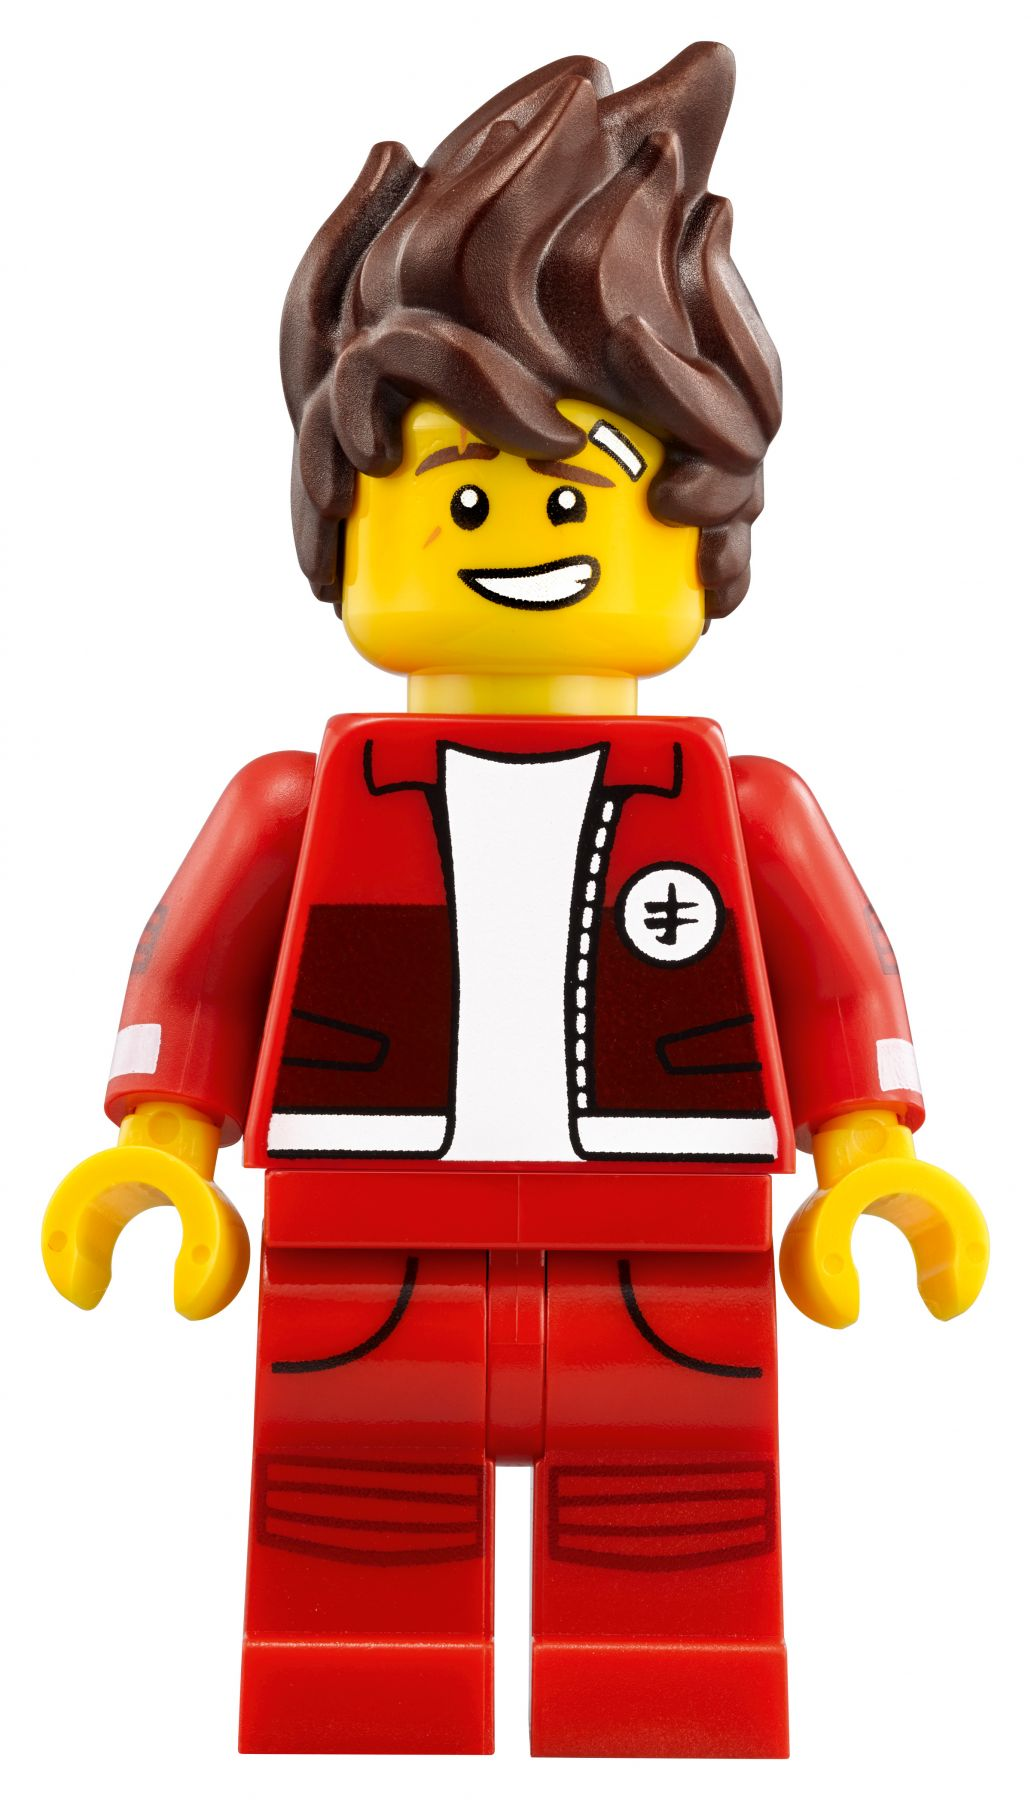 LEGO The LEGO Ninjago Movie 70620 Ninjago City LEGO_70620_alt18.jpg